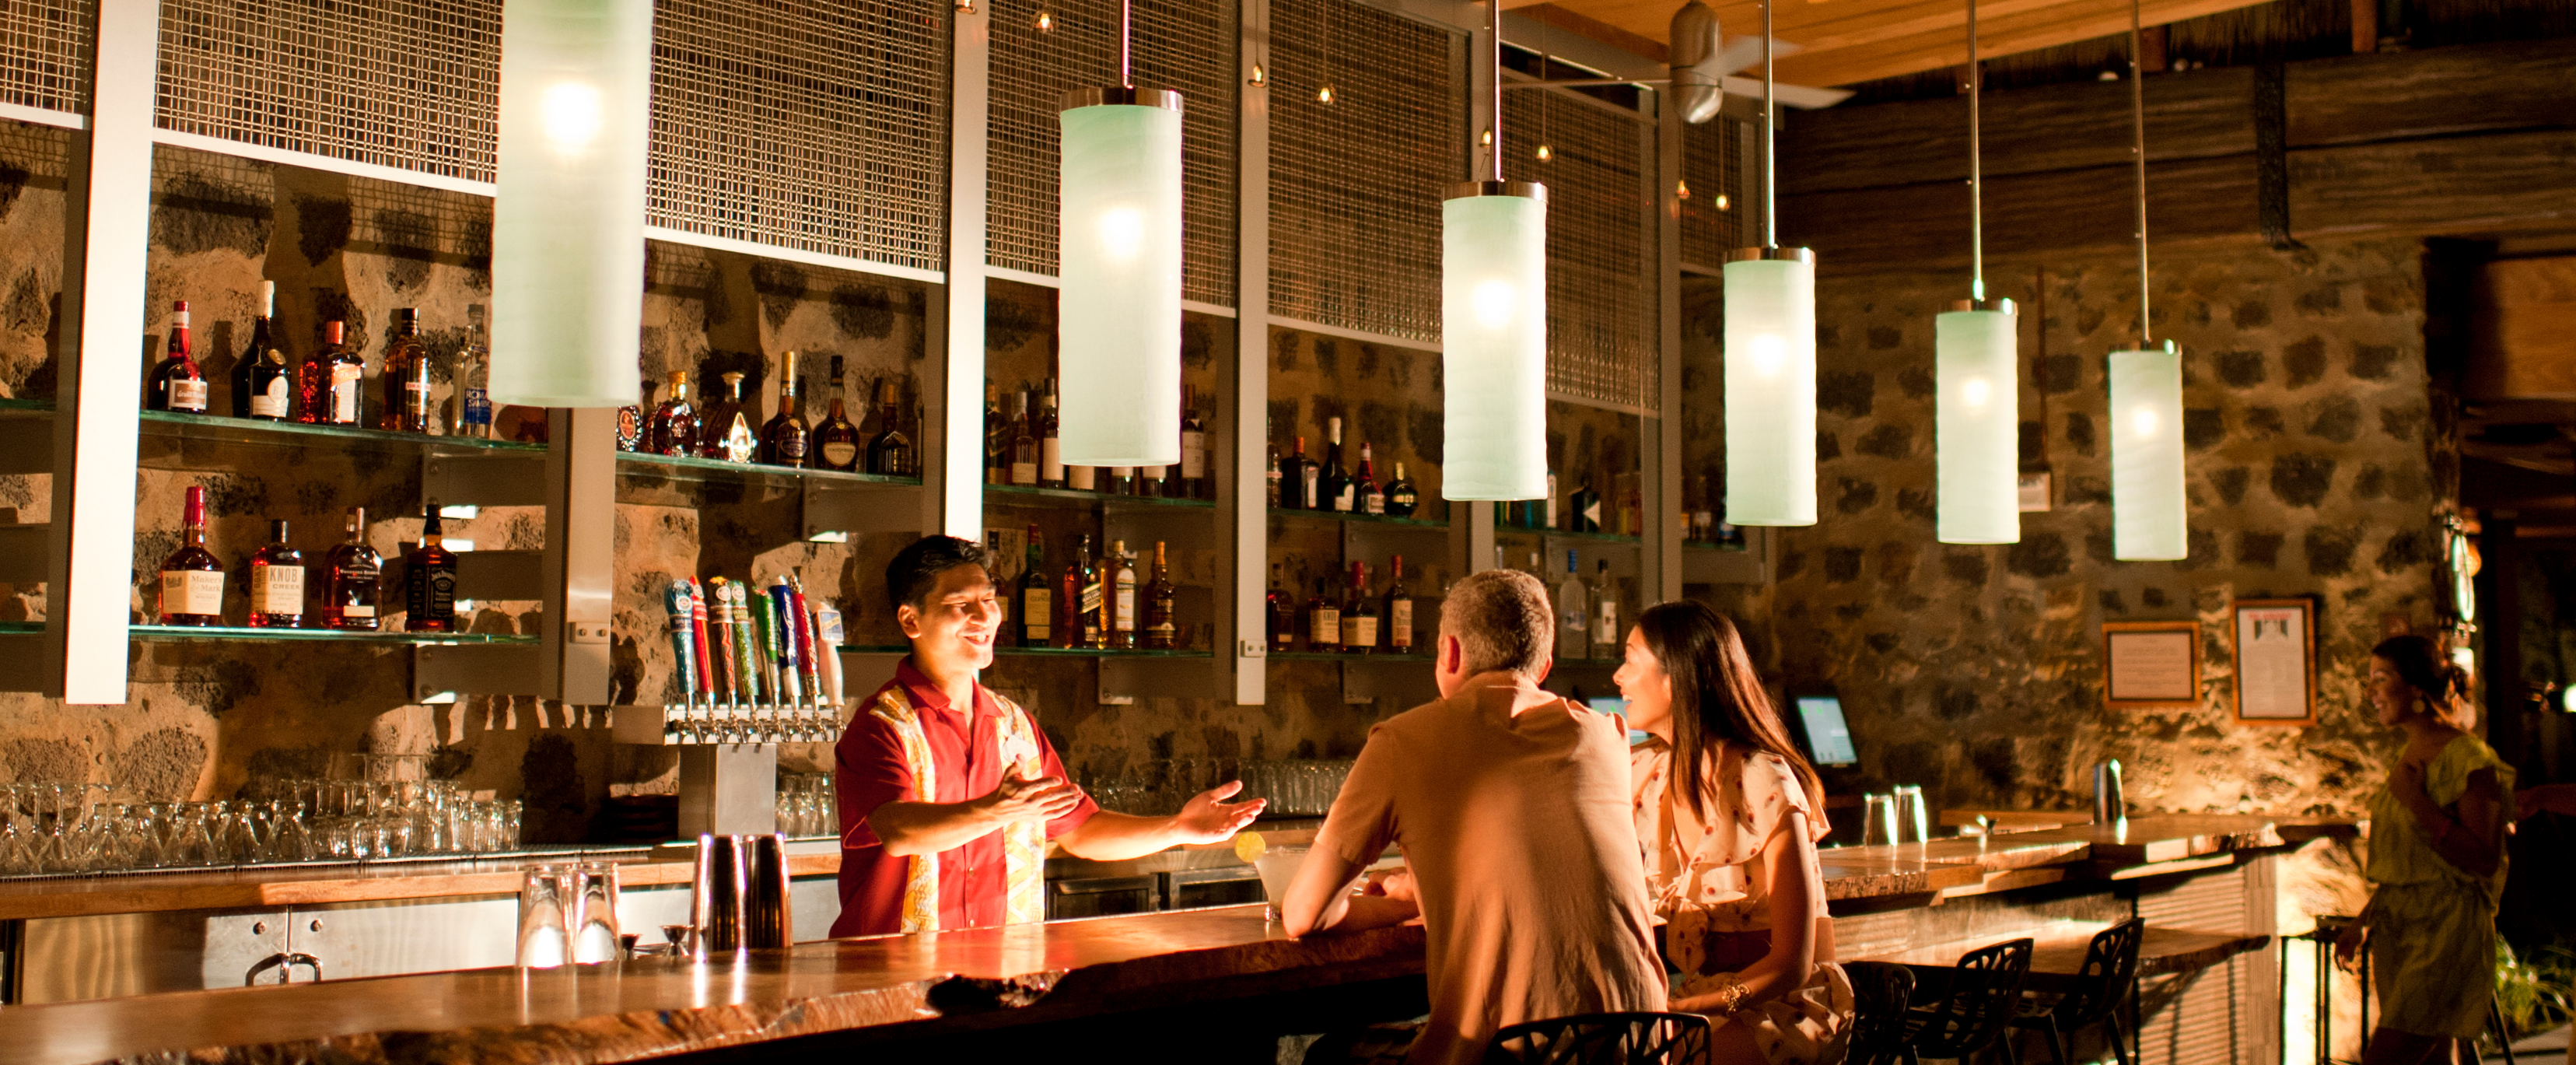 A smiling bartender gestures while talking to a couple seated at a bar with hanging light fixtures